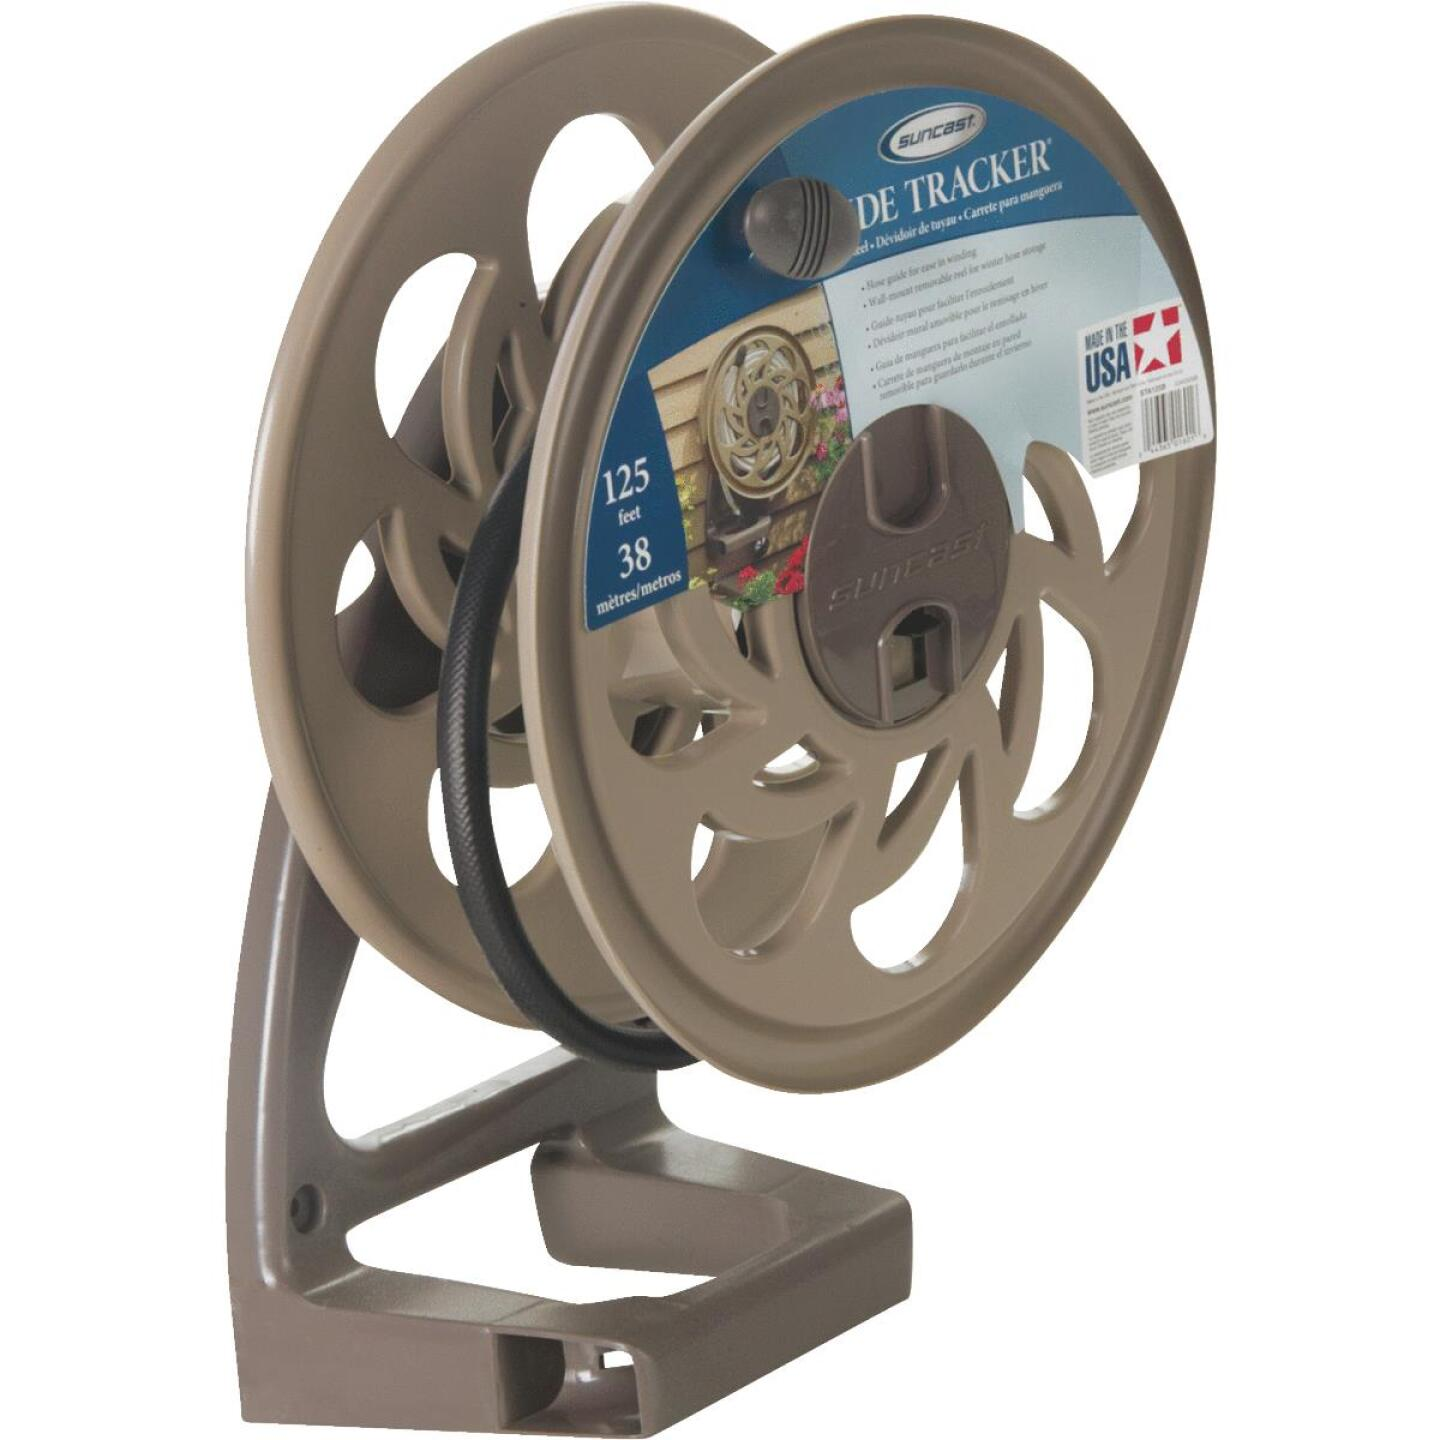 Suncast Sidetracker 125 Ft. x 5/8 In. Taupe Resin Hose Reel Image 2